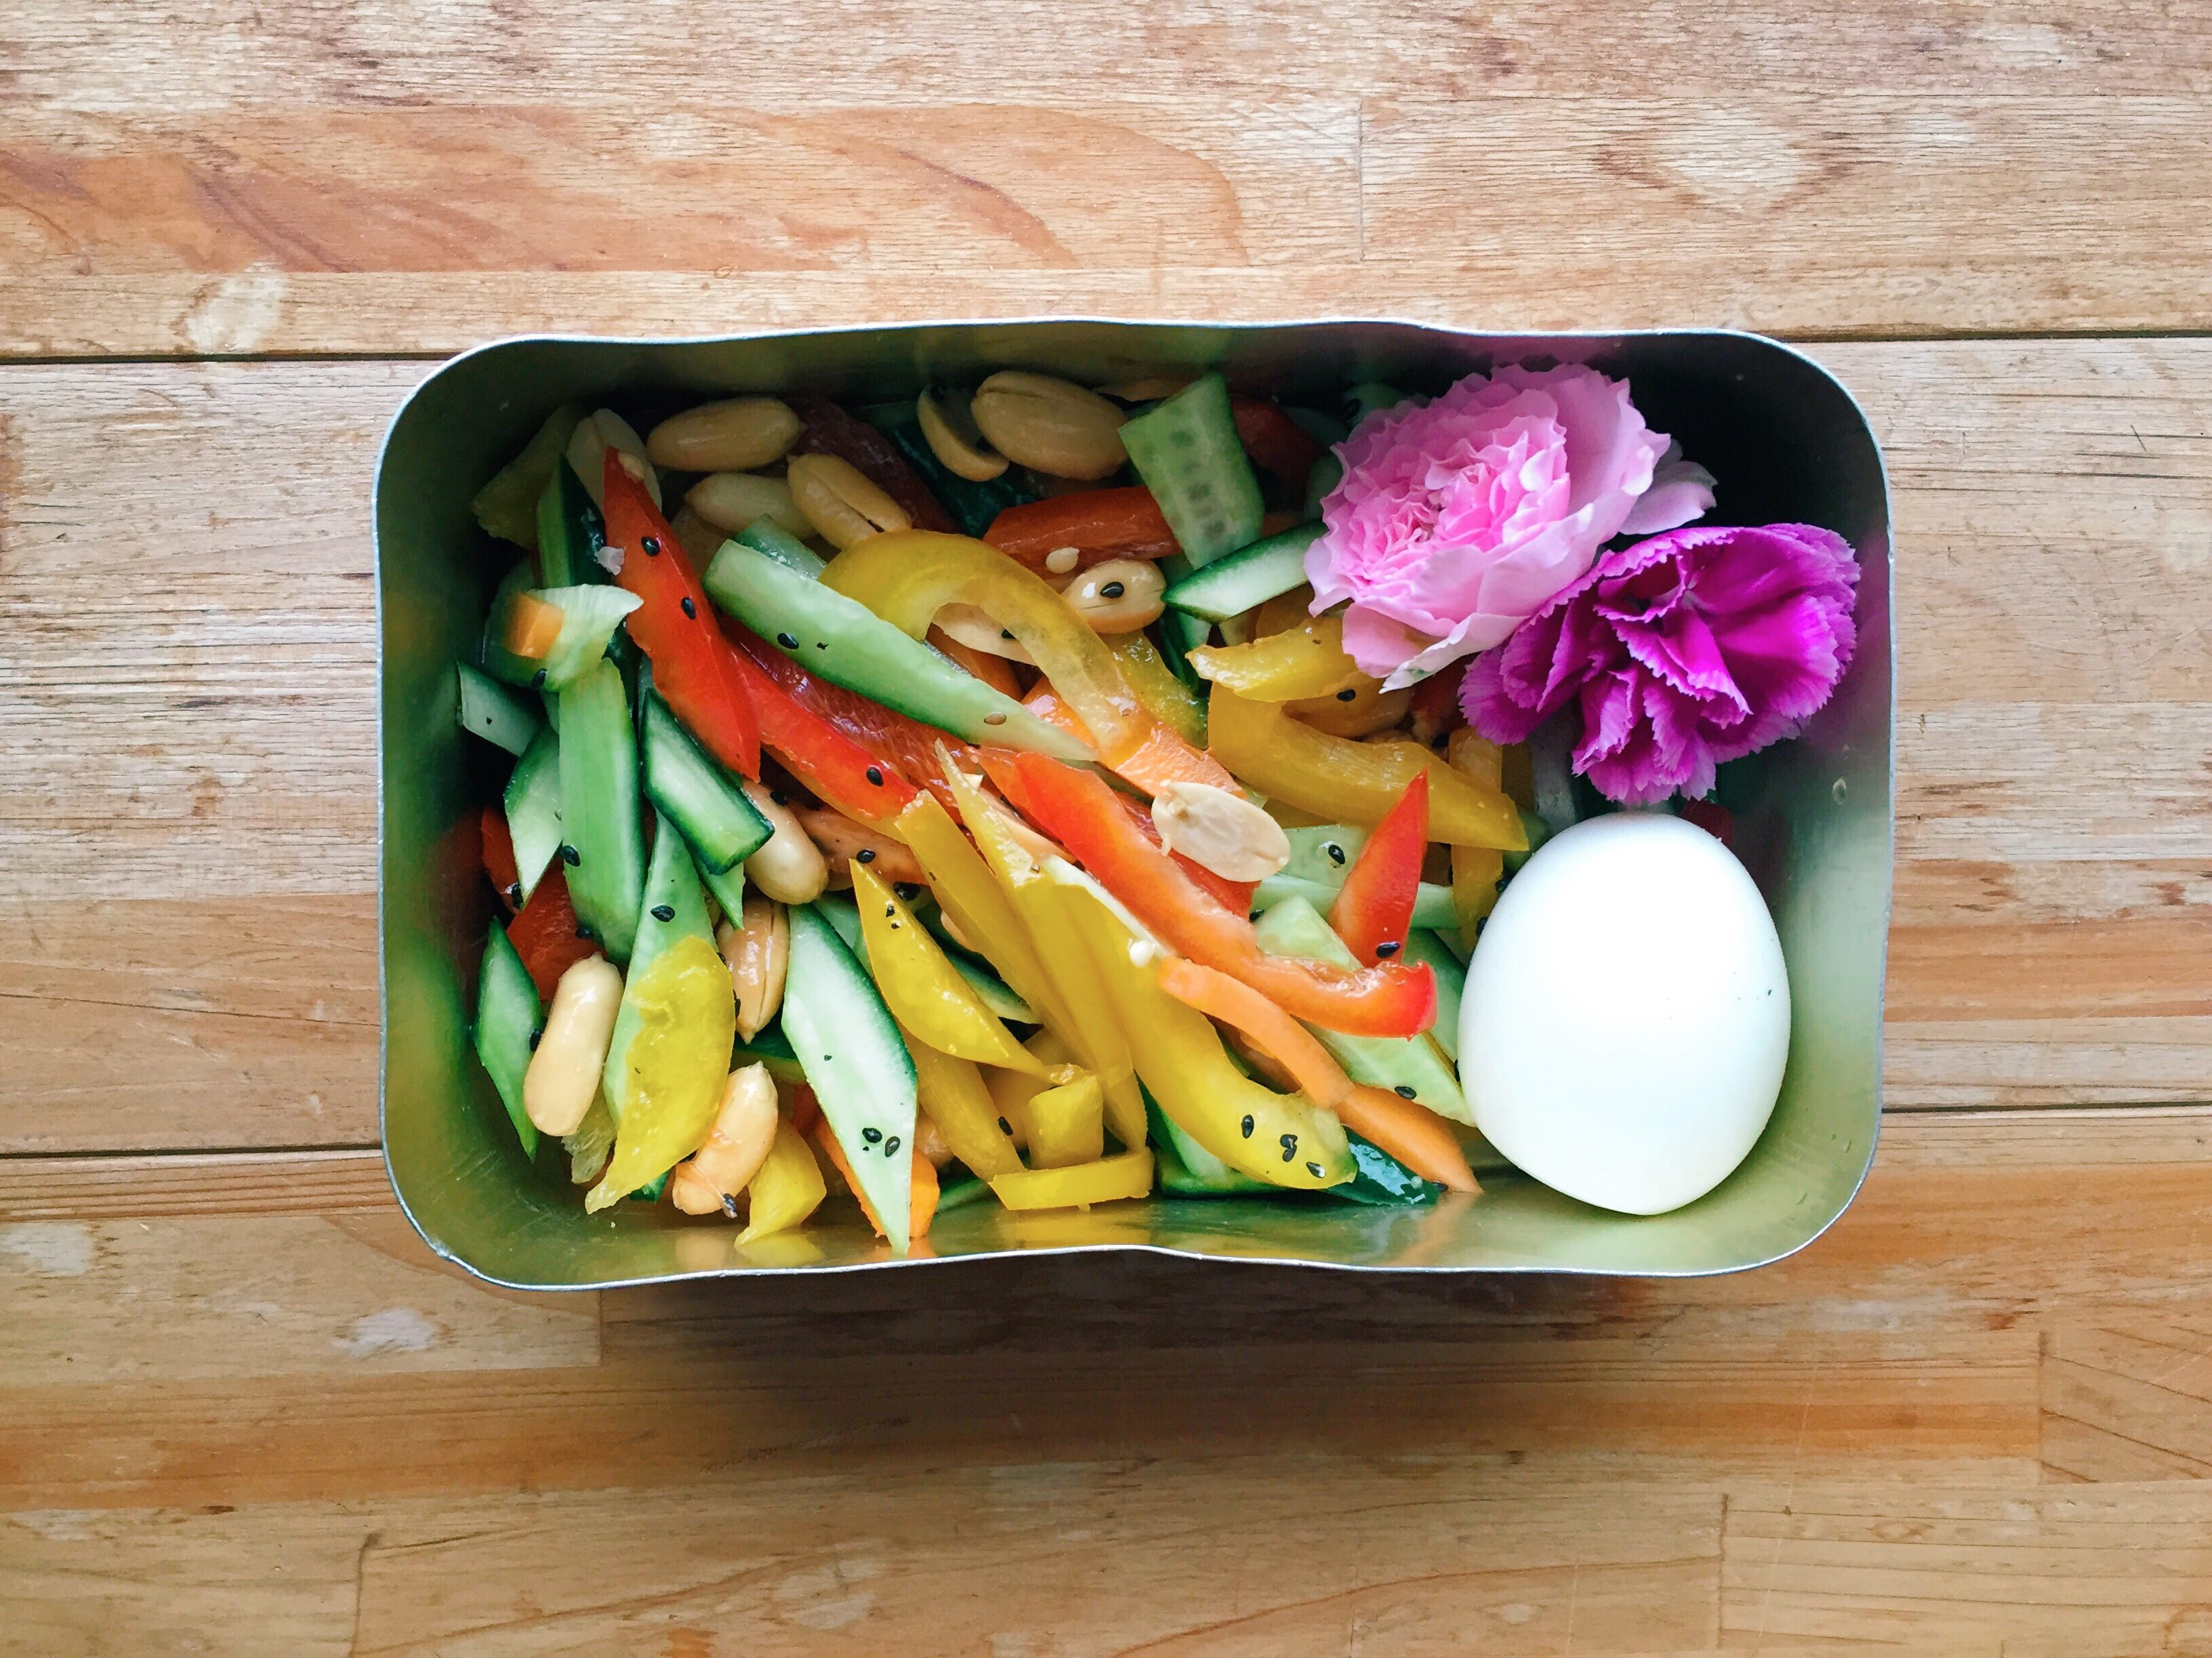 You can use your bento for salad too